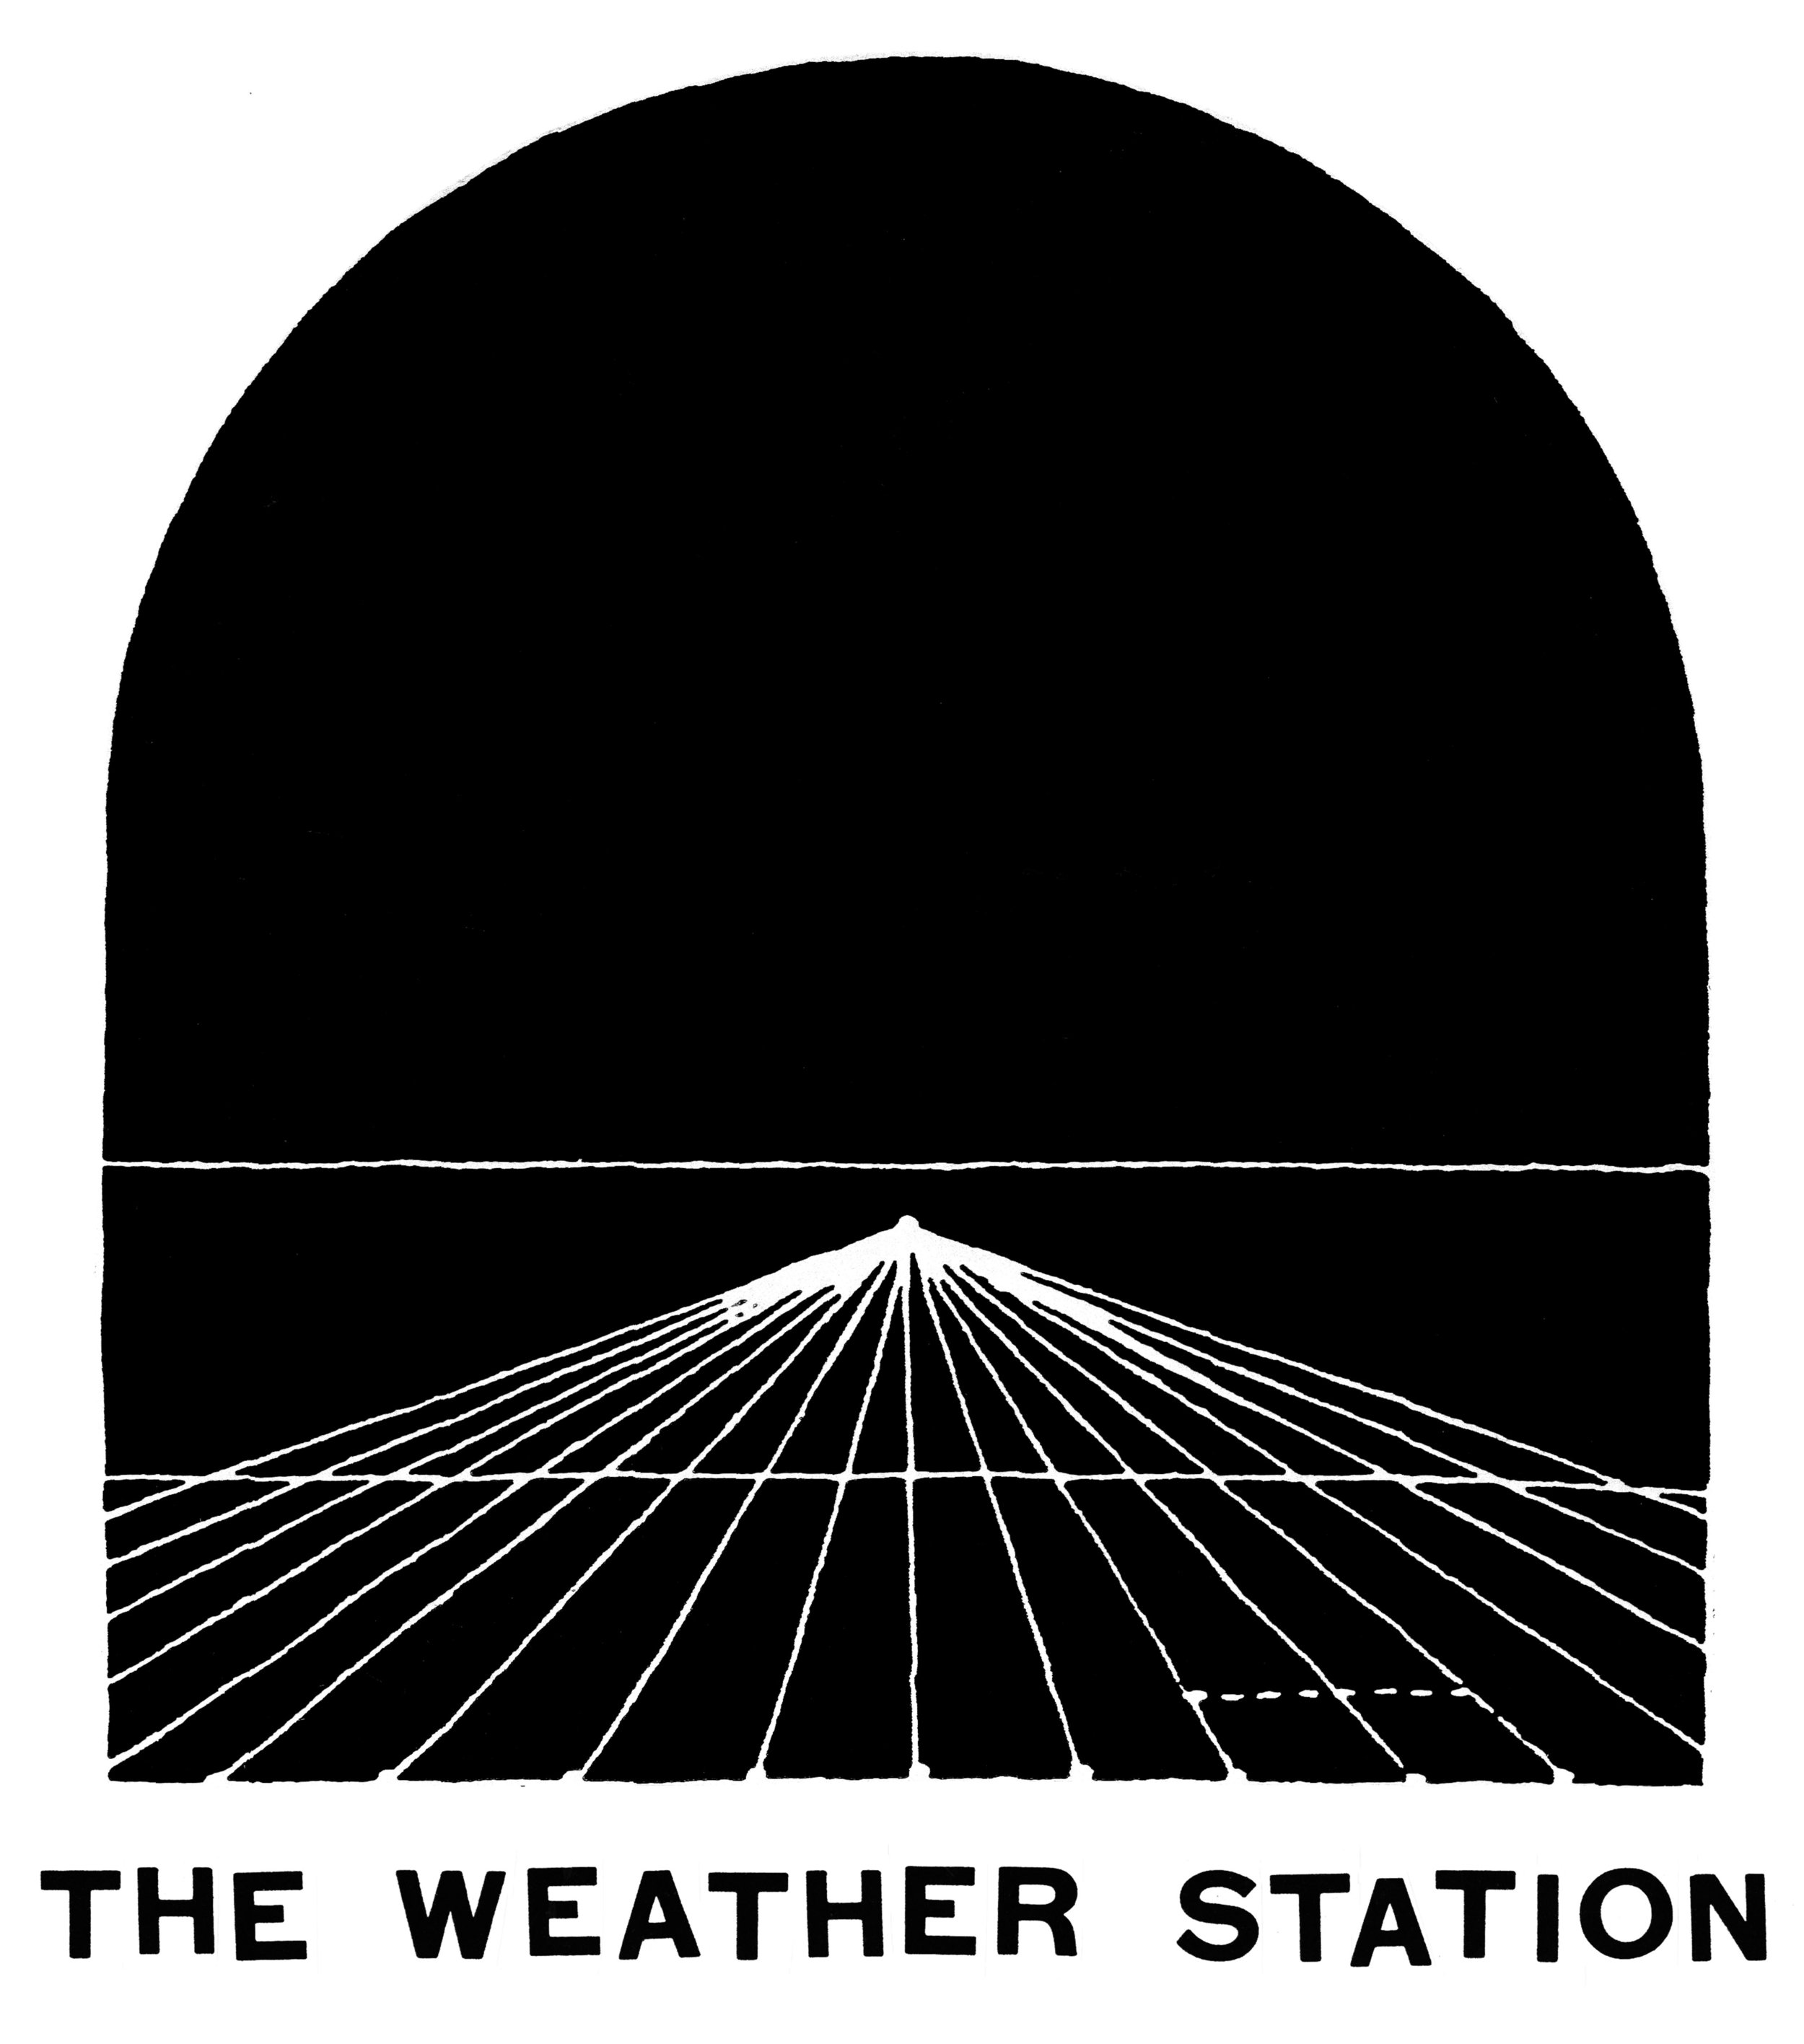 design for The Weather Station  for shirts and a backdrop  2017